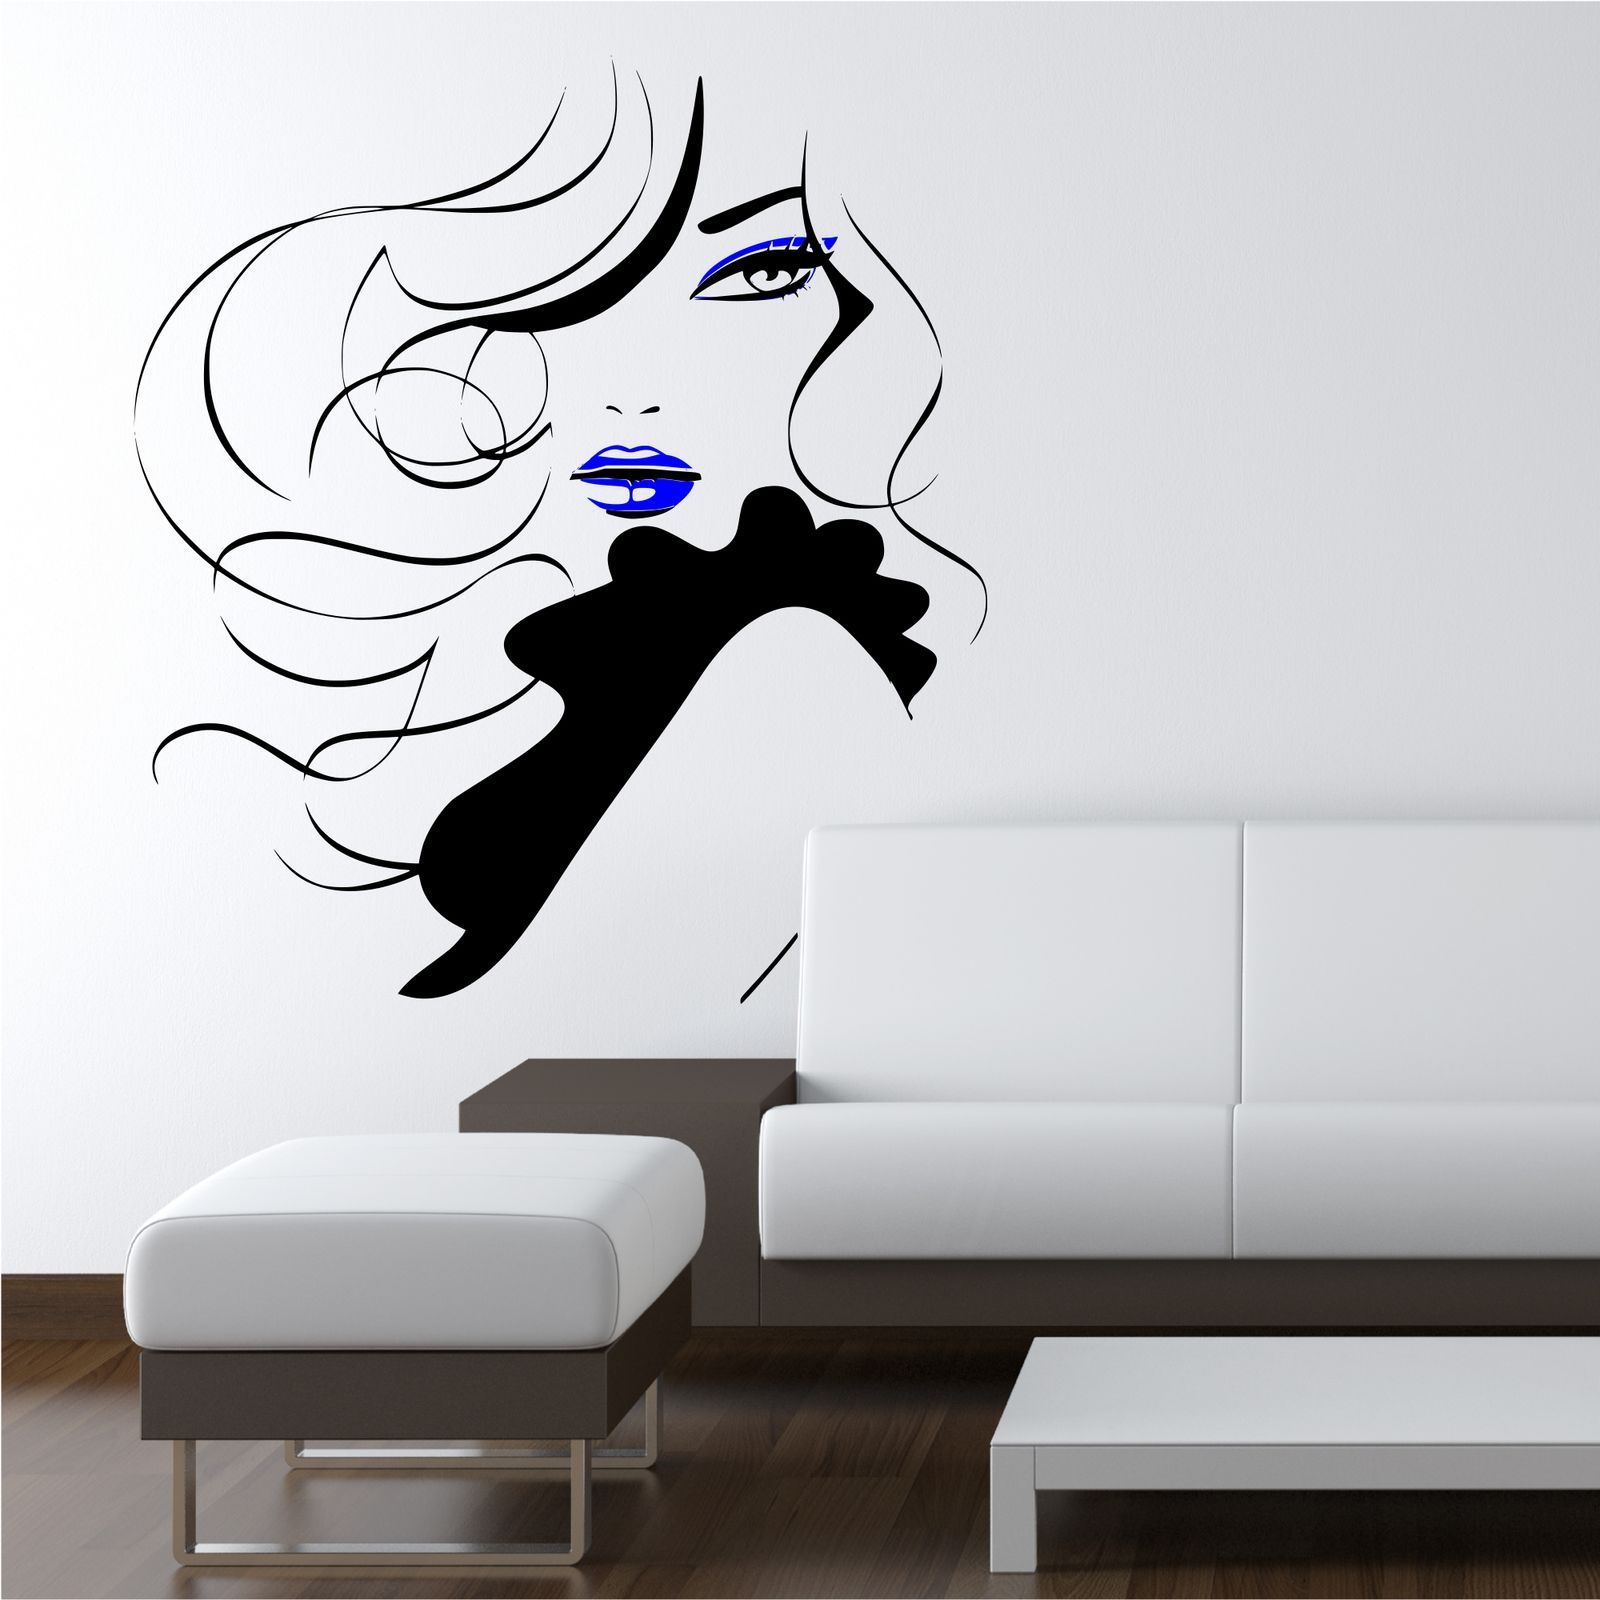 pin up girl women modern hair salon wall sticker decal mural transfer wsd588 ebay. Black Bedroom Furniture Sets. Home Design Ideas